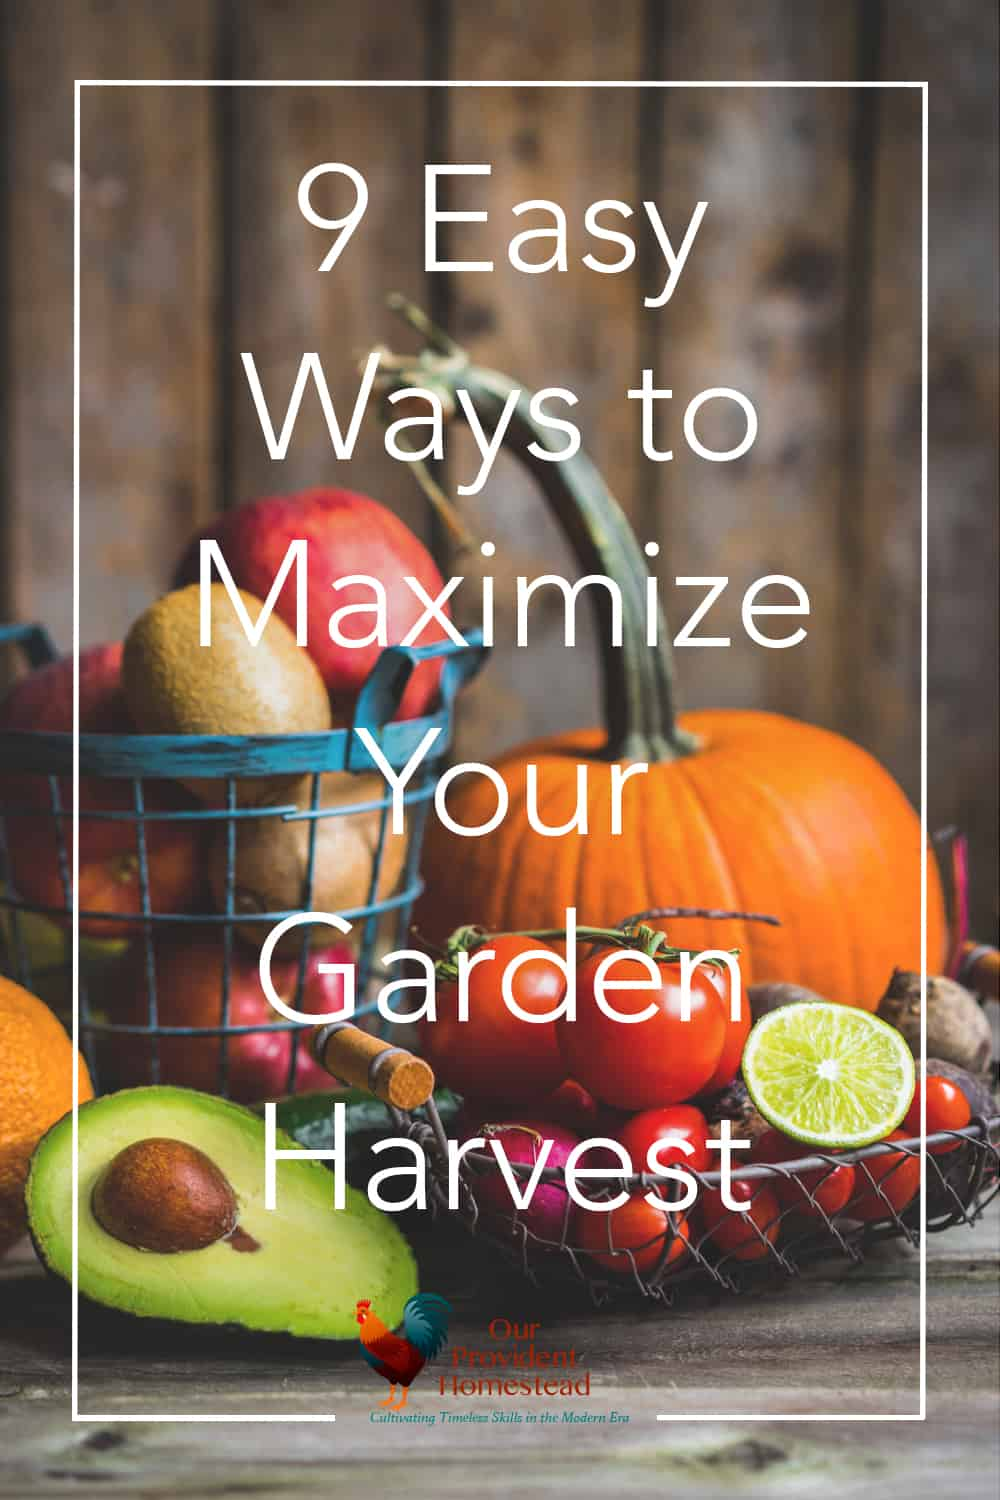 Don't you just love harvesting fresh food from your garden? Click here to see how to maximize your garden harvest today! Garden Harvest | Homesteading | Fall Garden